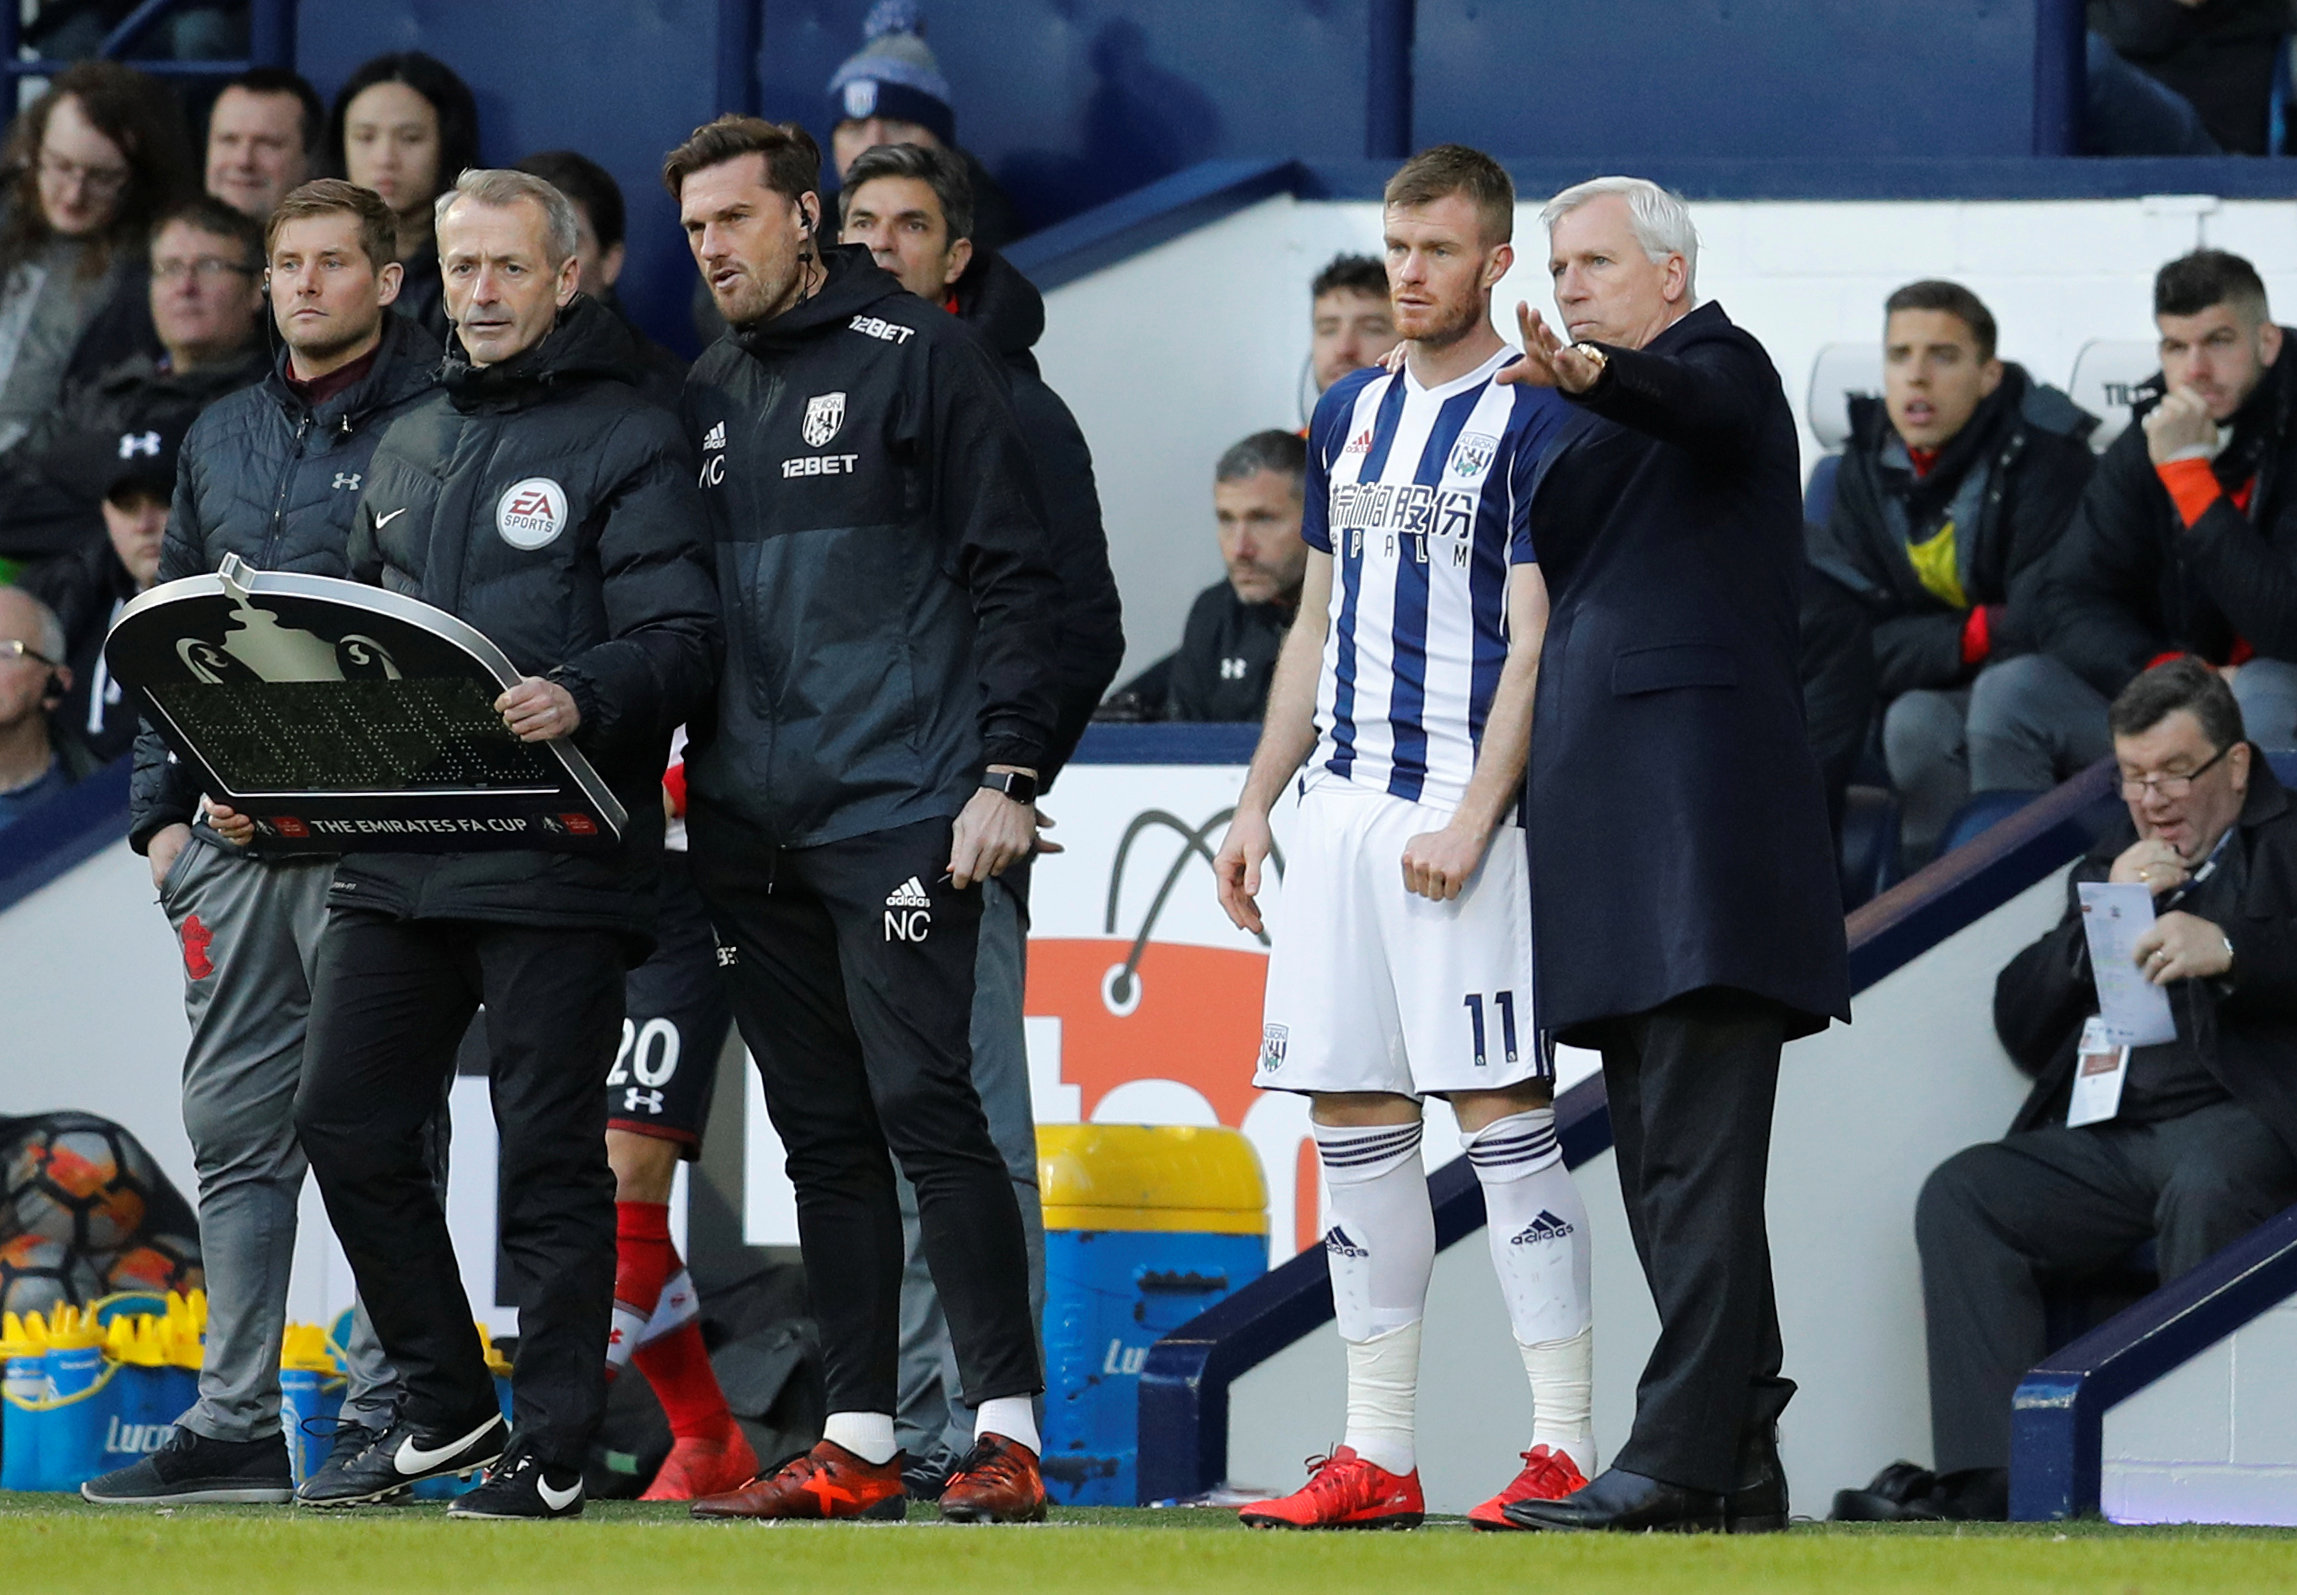 Exchanging views: Alan Pardew and Chris Brunt. Picture: Action Images